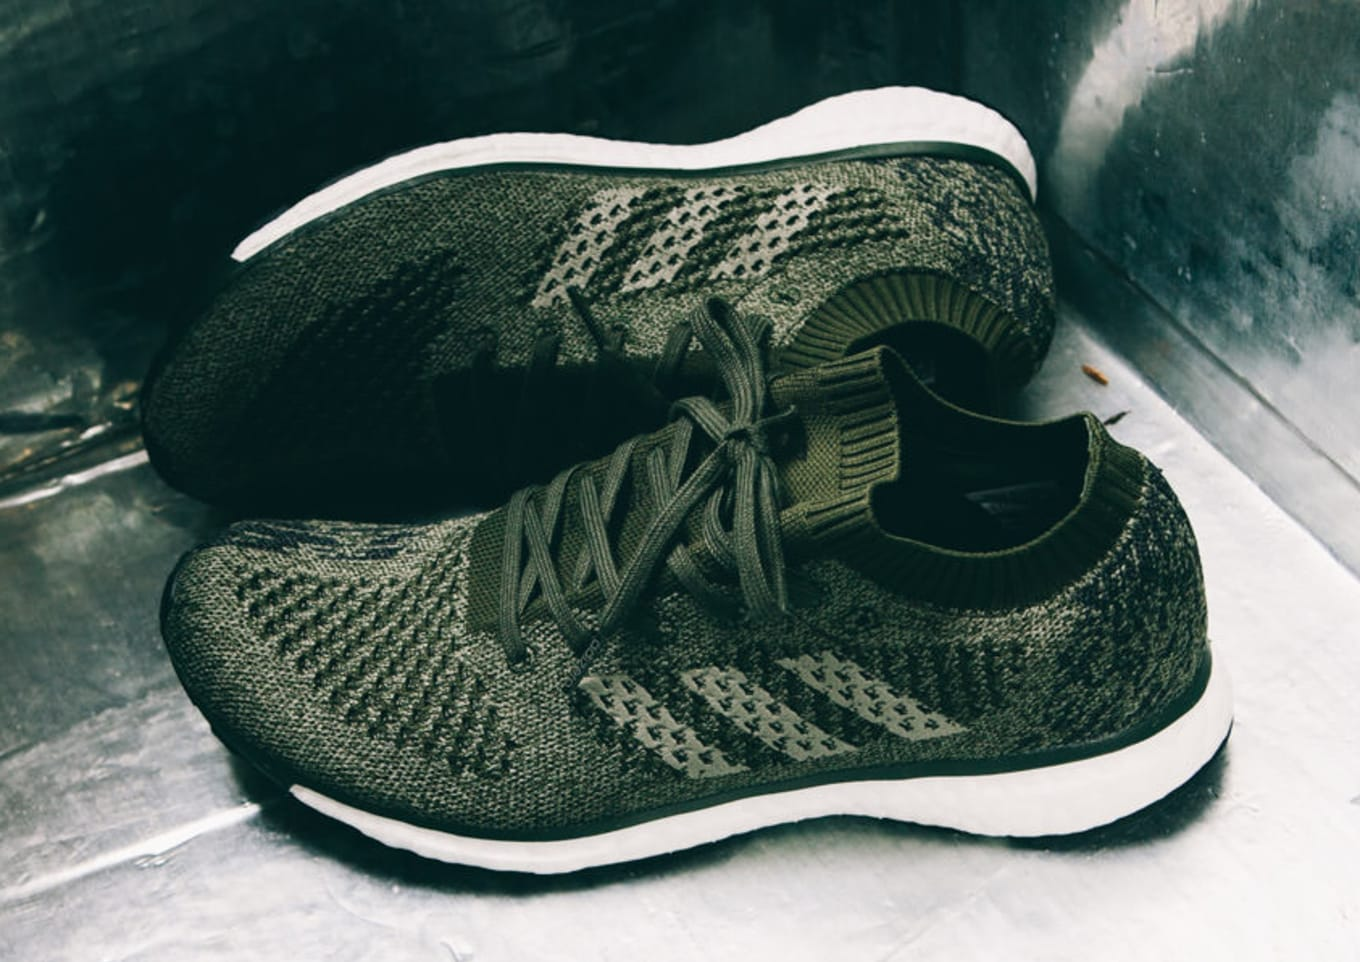 new product 73d3d 91cd7 Check out the olive colorway for the AdiZero Prime.